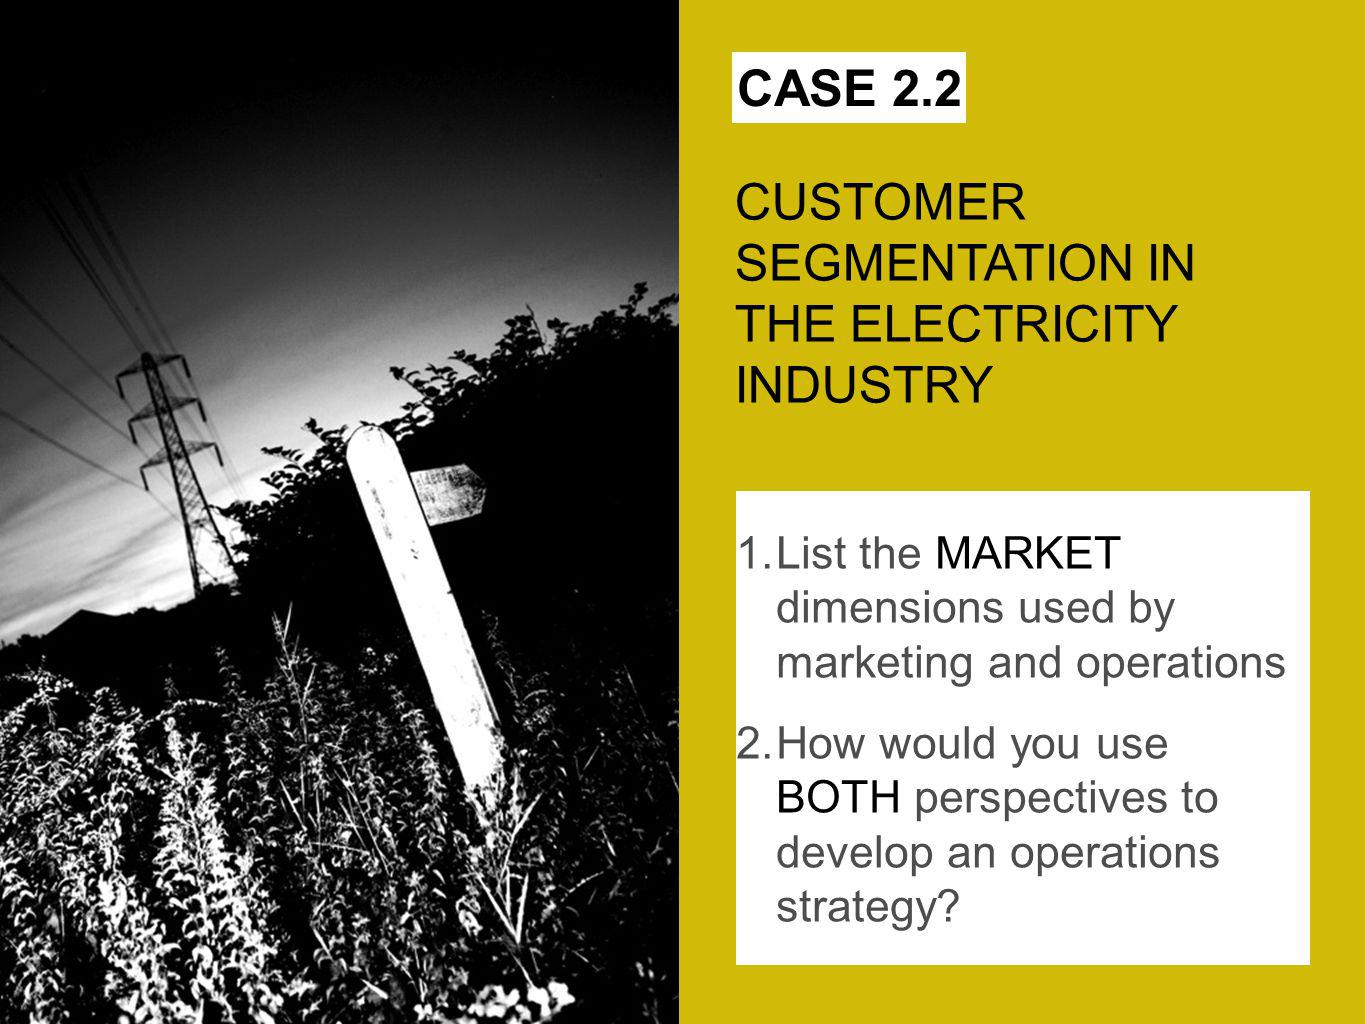 CASE 2.2 CUSTOMER SEGMENTATION IN THE ELECTRICITY INDUSTRY 1.List the MARKET dimensions used by marketing and operations 2.How would you use BOTH perspectives to develop an operations strategy?